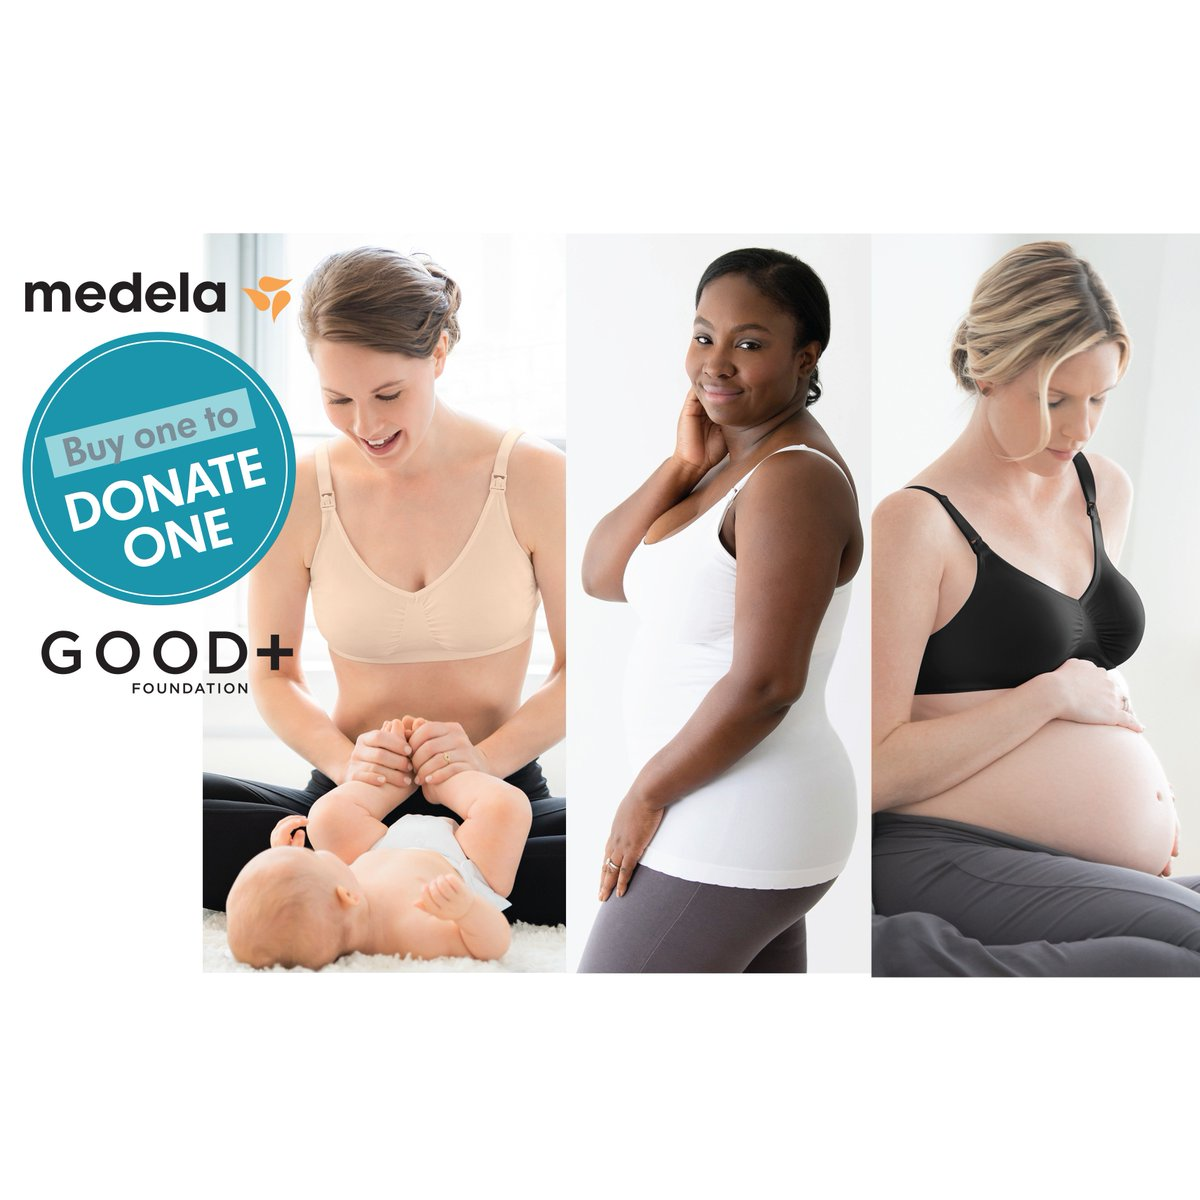 69ad901c24a77 To celebrate Mother's Day, during May @Medela_US will donate one T-shirt bra,  comfort bra or maternity & nursing tank to GOOD+ for each one purchased  from ...